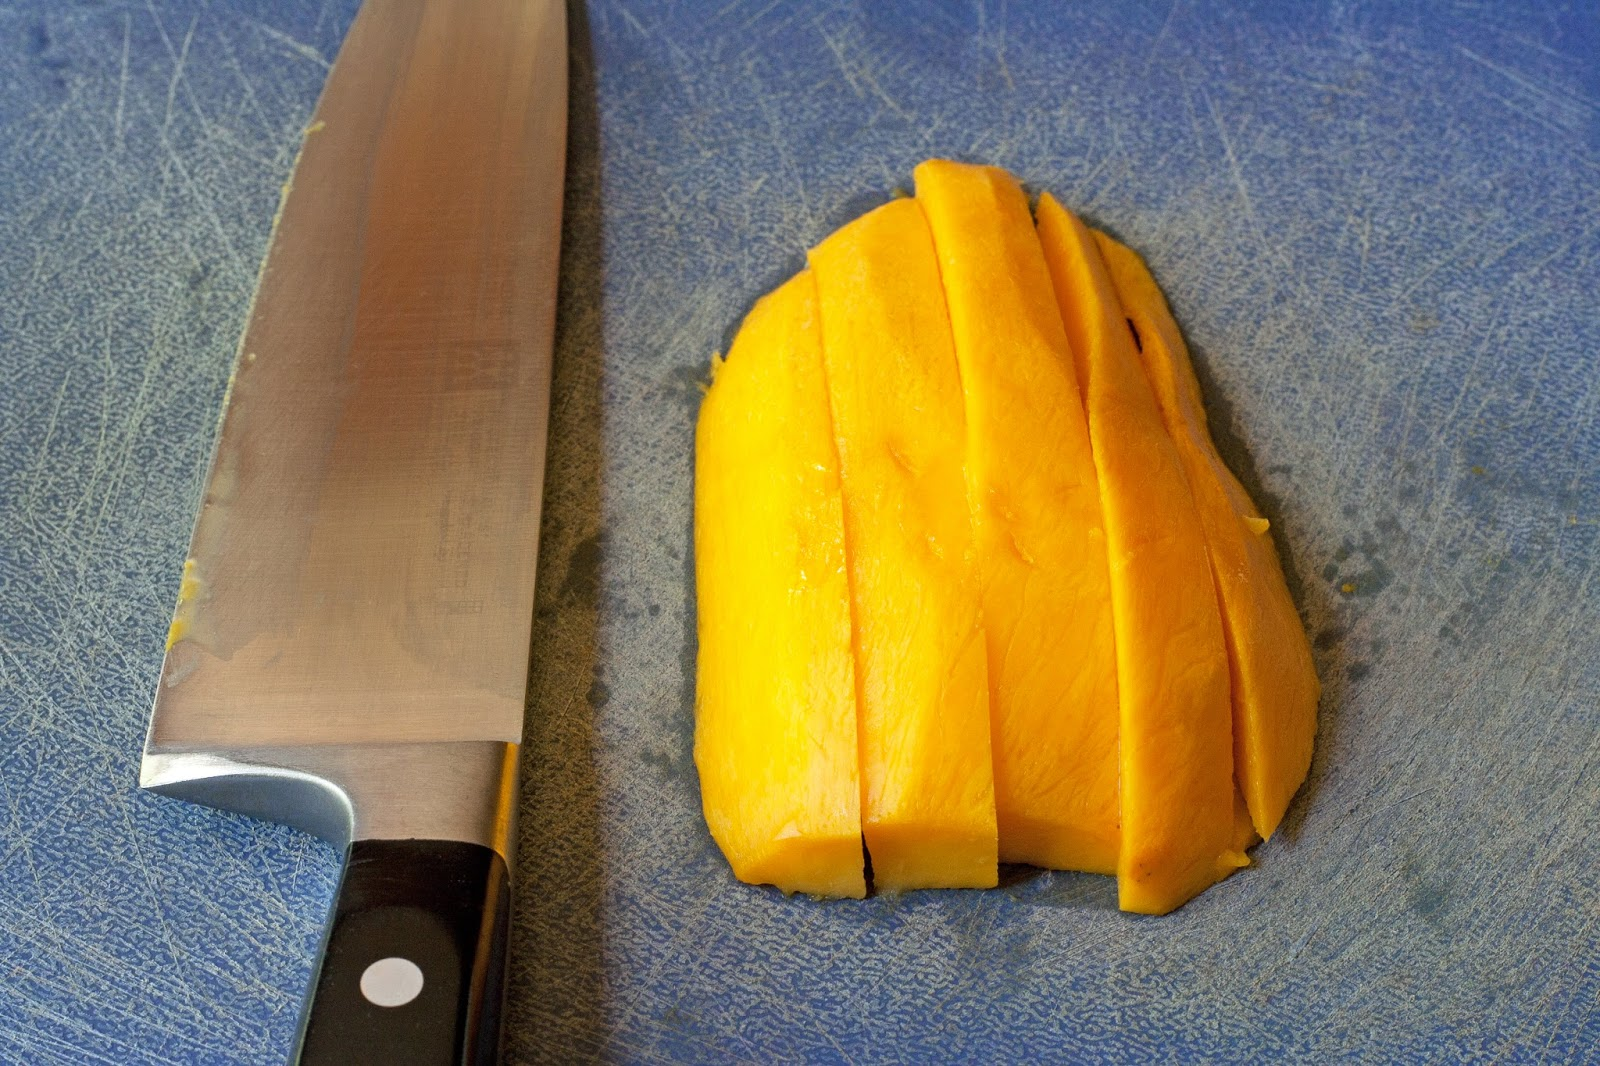 Slice the mango width wise or lengthwise